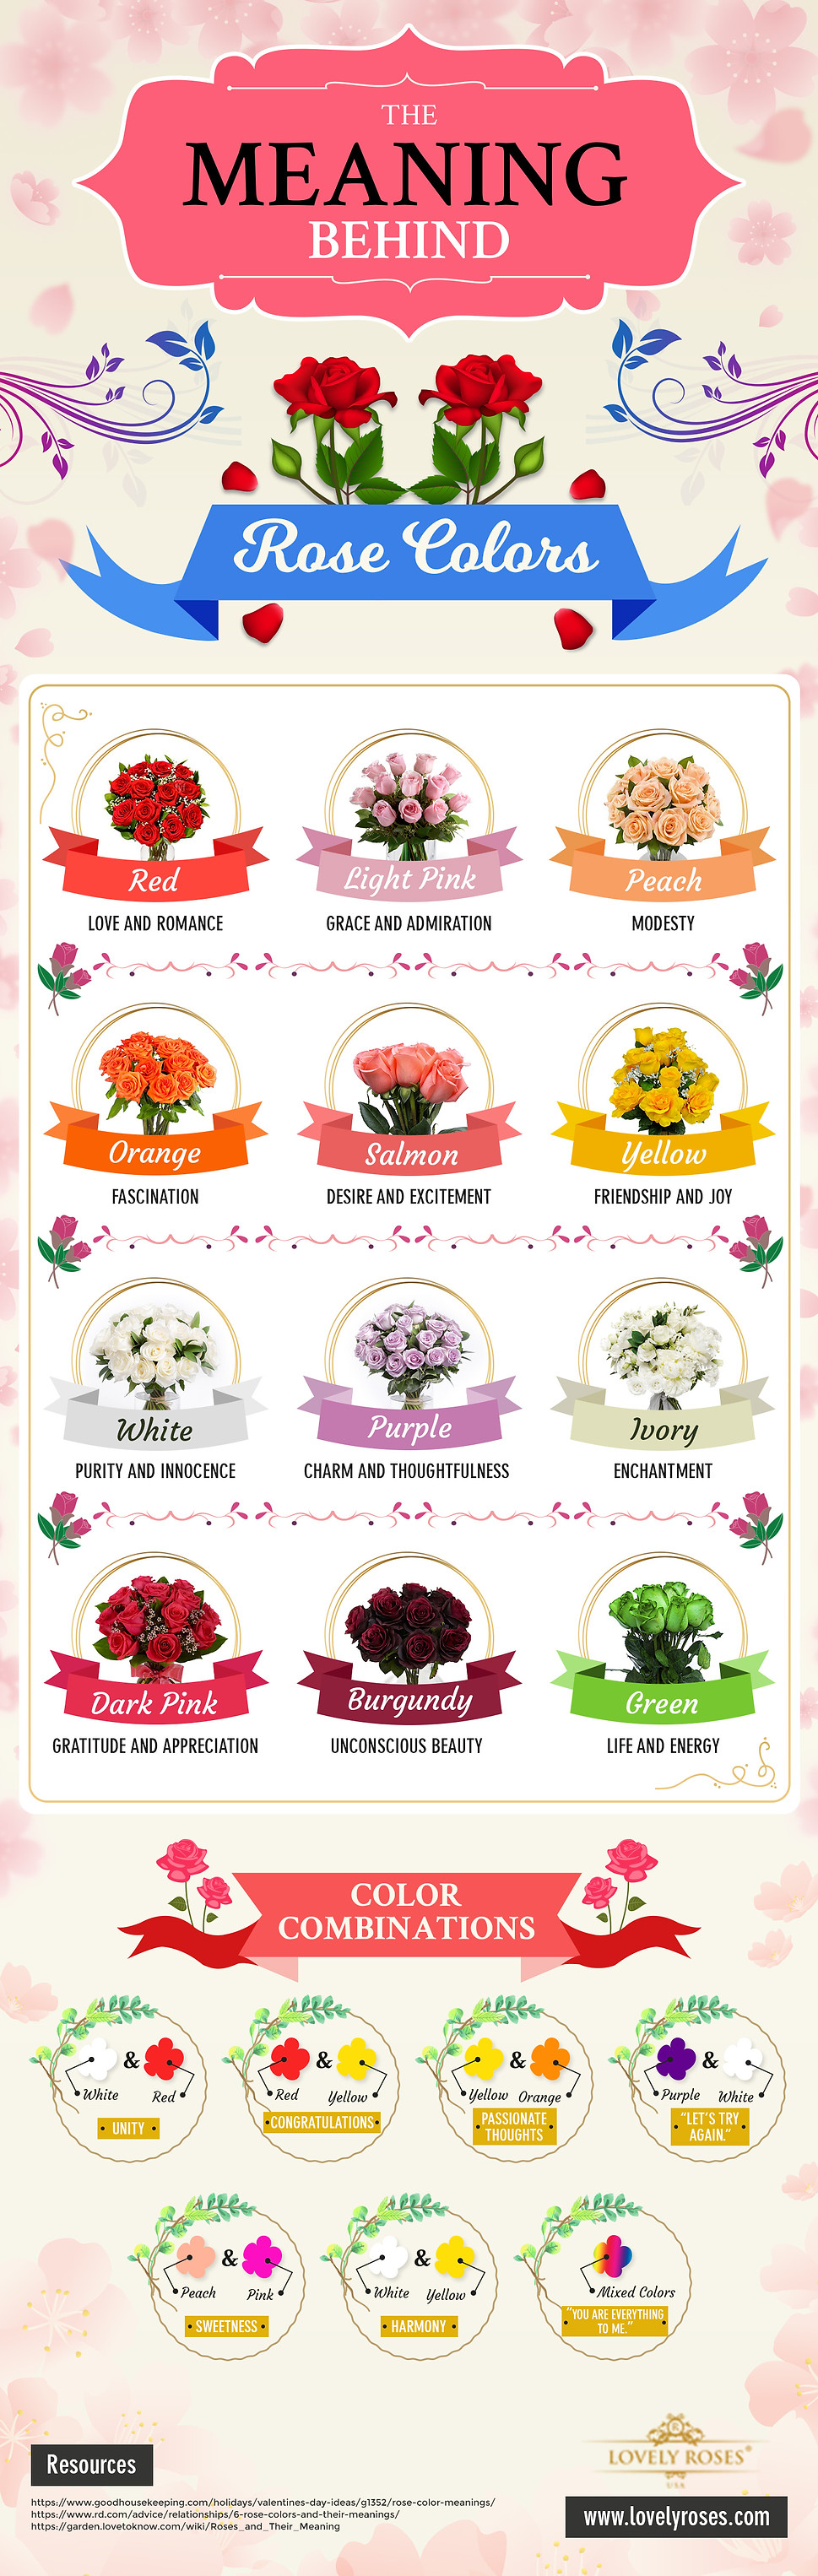 Lovely-Roses-The-Meaning-Behind-Rose-Col